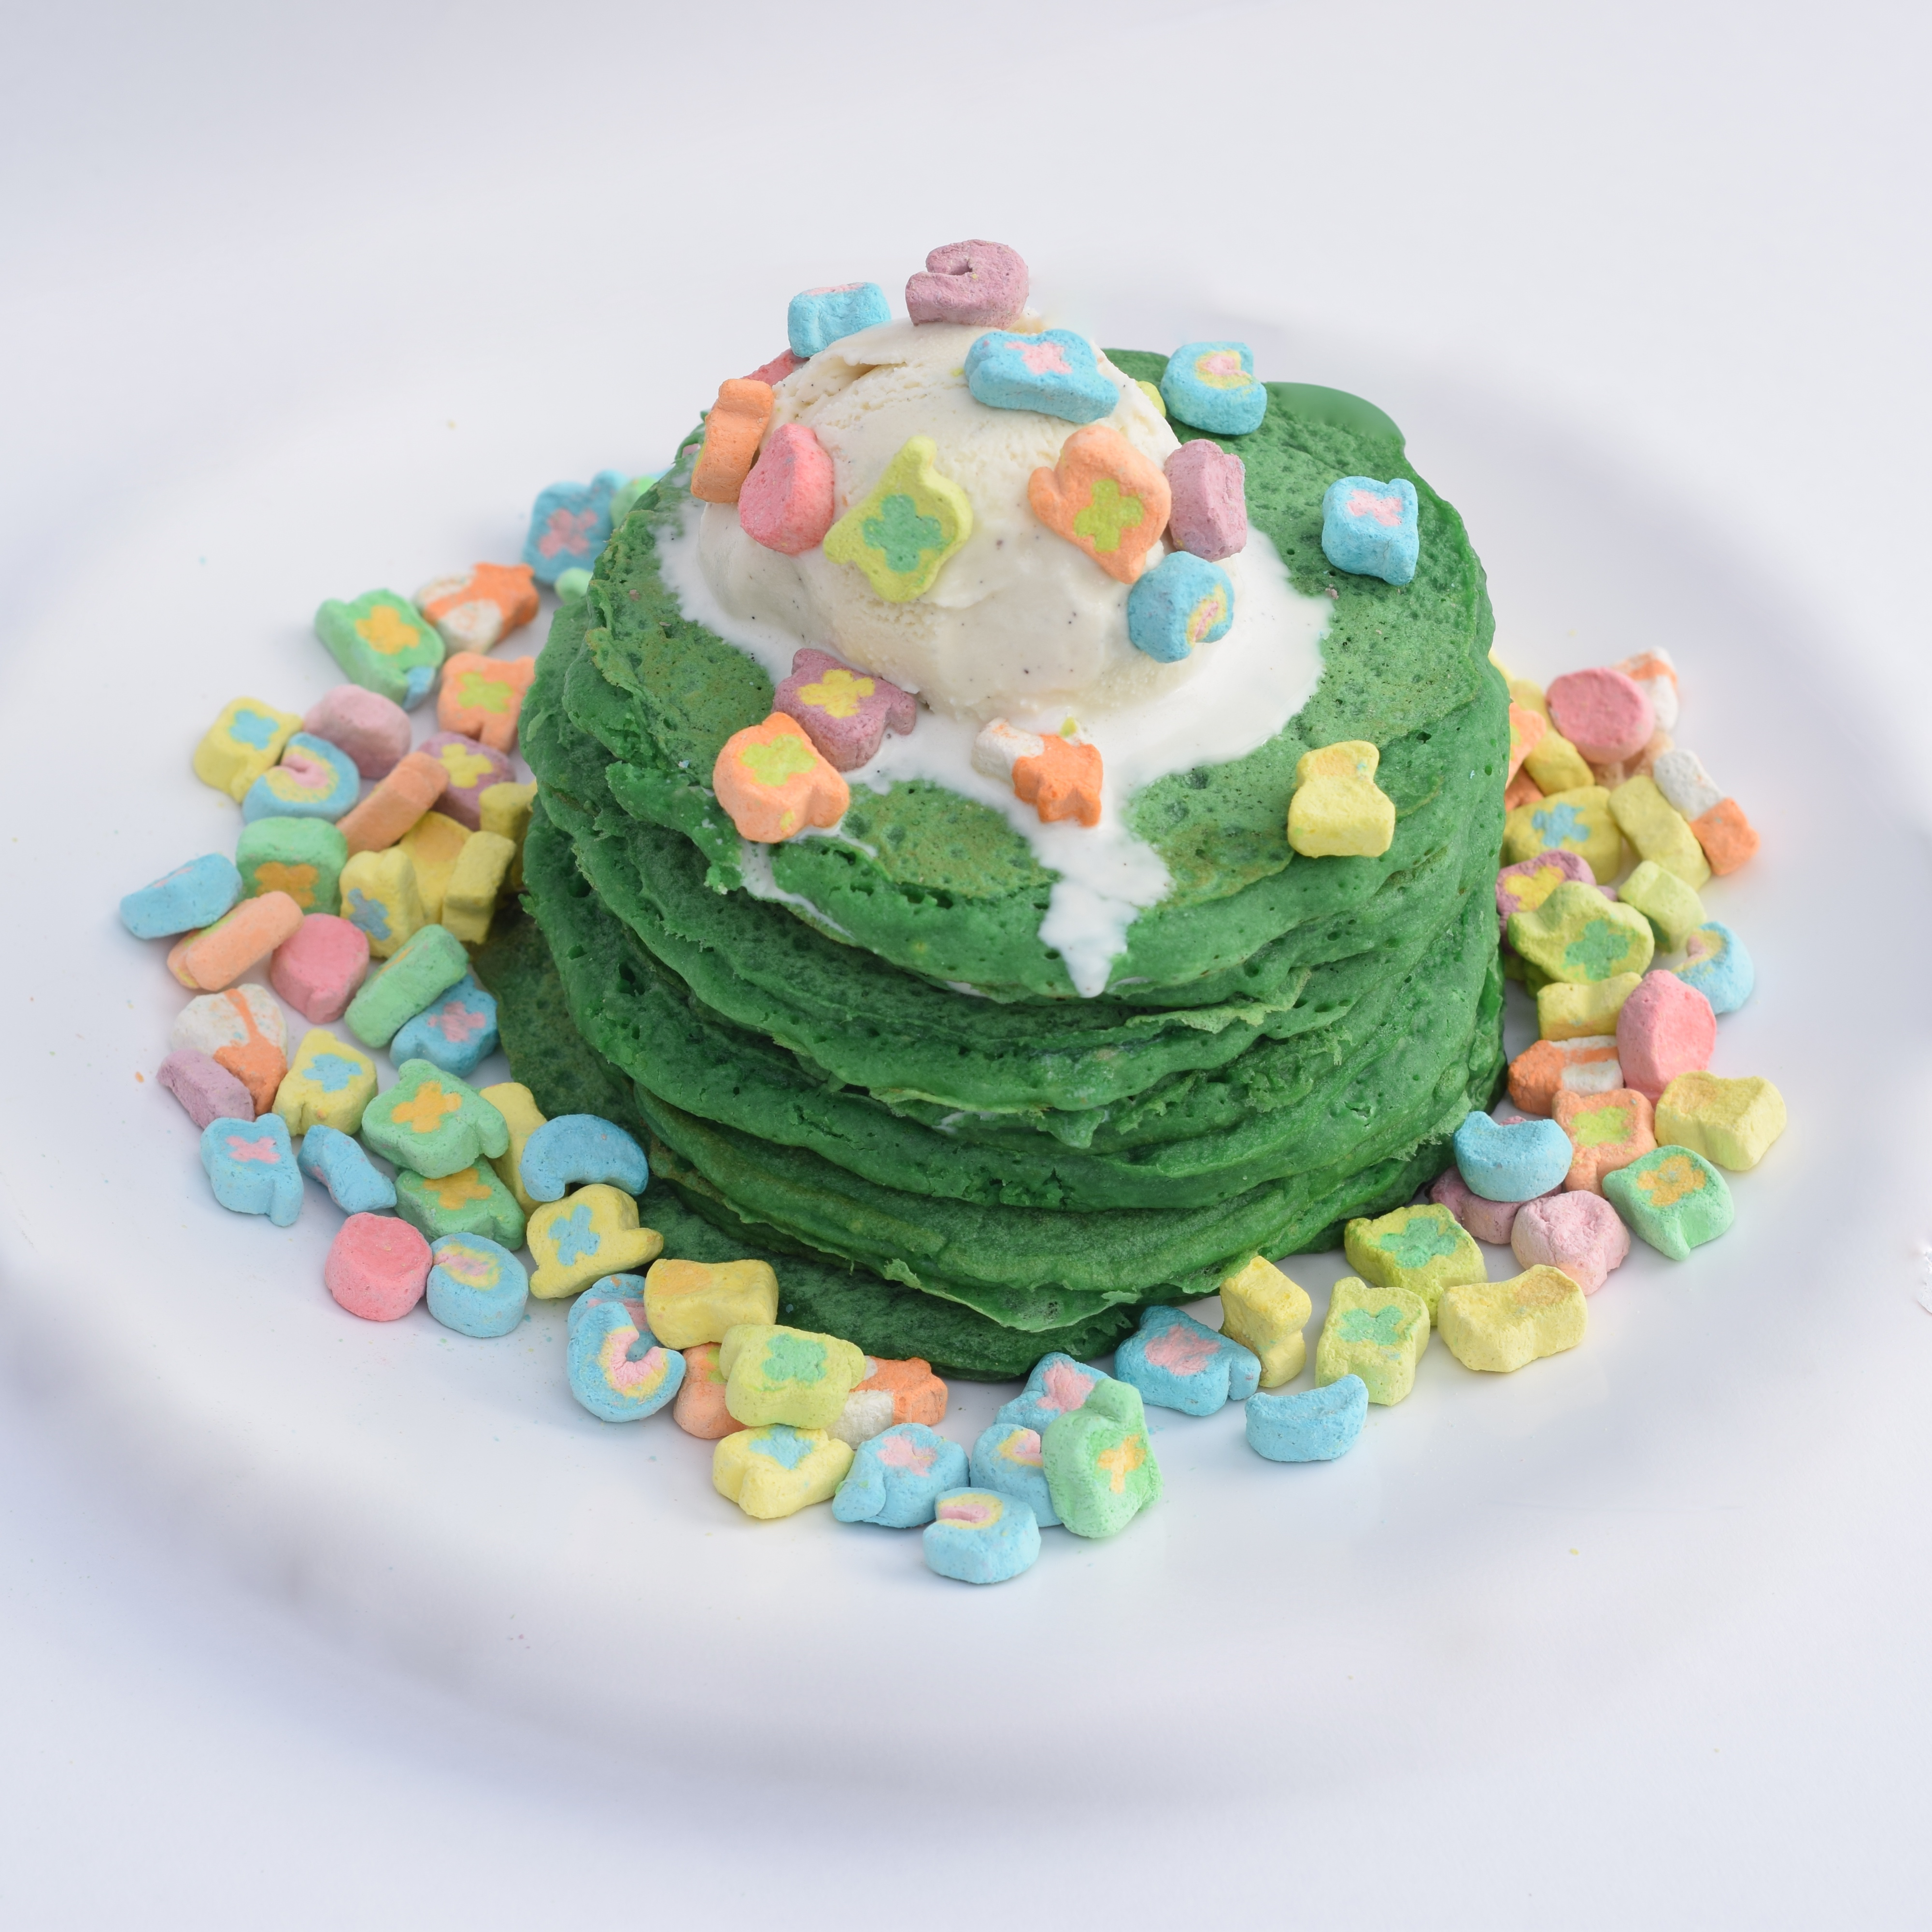 St. Patrick's Day Guinness Green Lucky Charm Pancakes